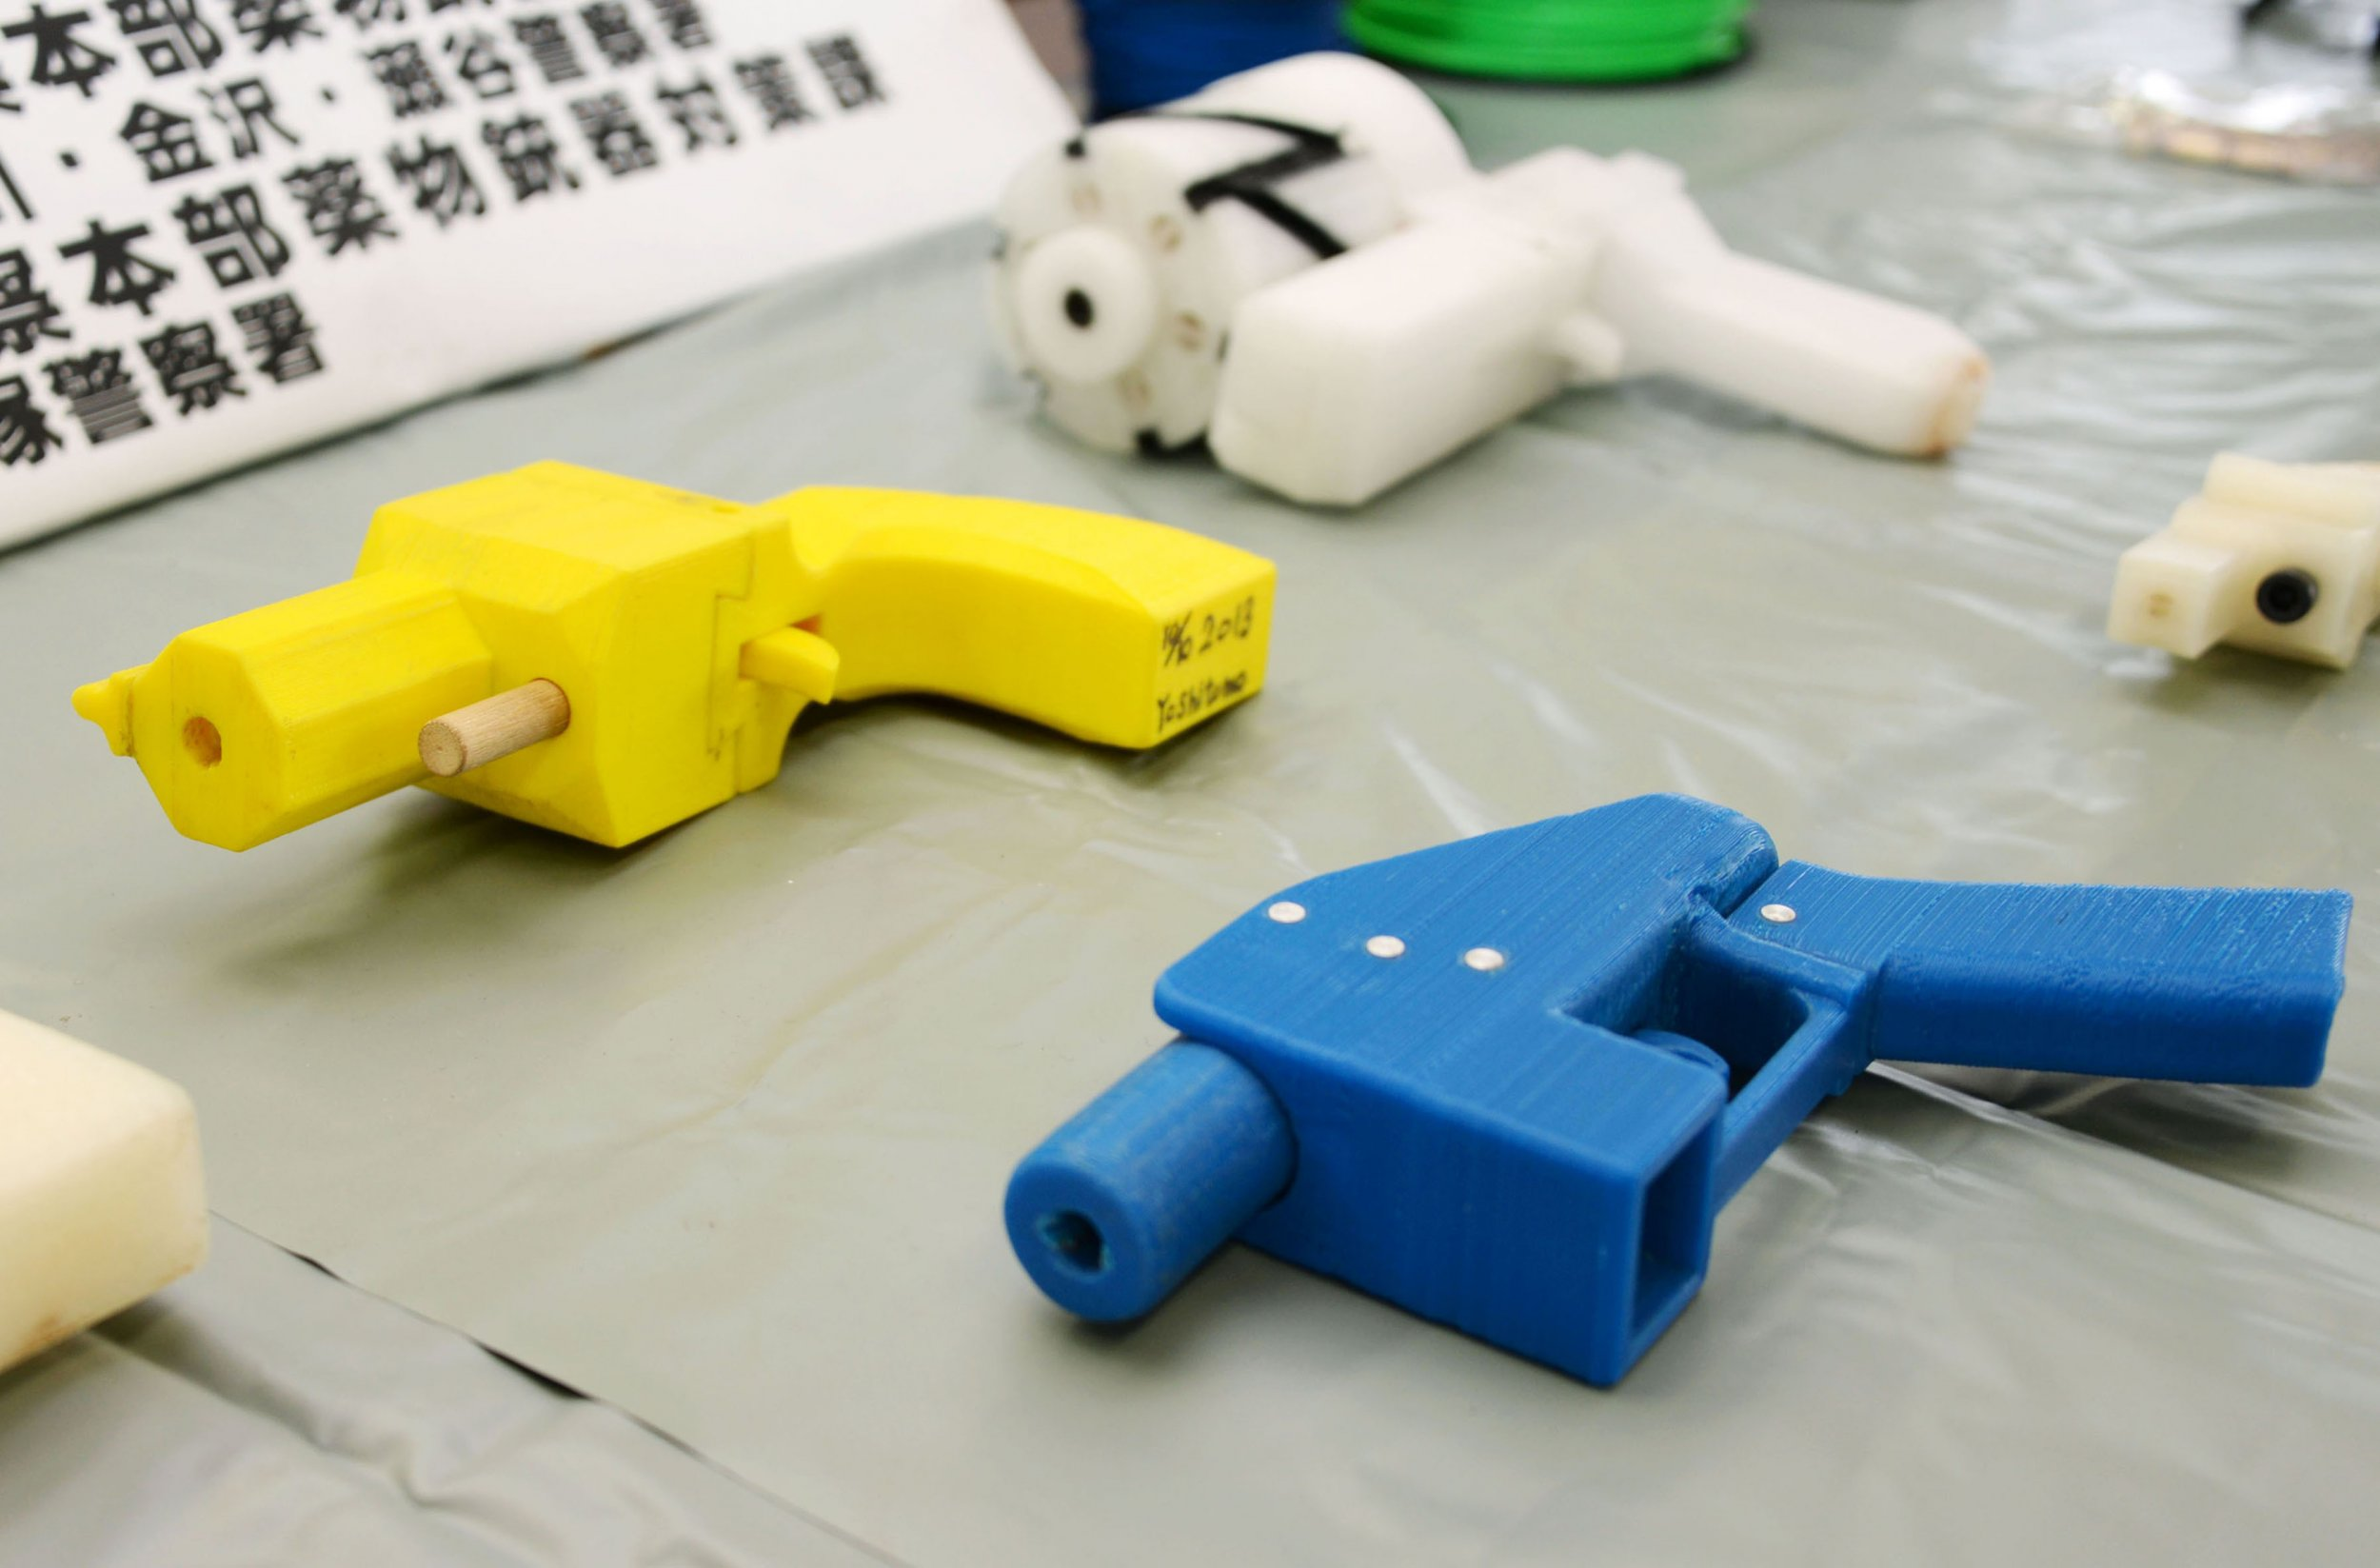 Defense Distributed Sues NJ Attorney General for backlash over 3D guns